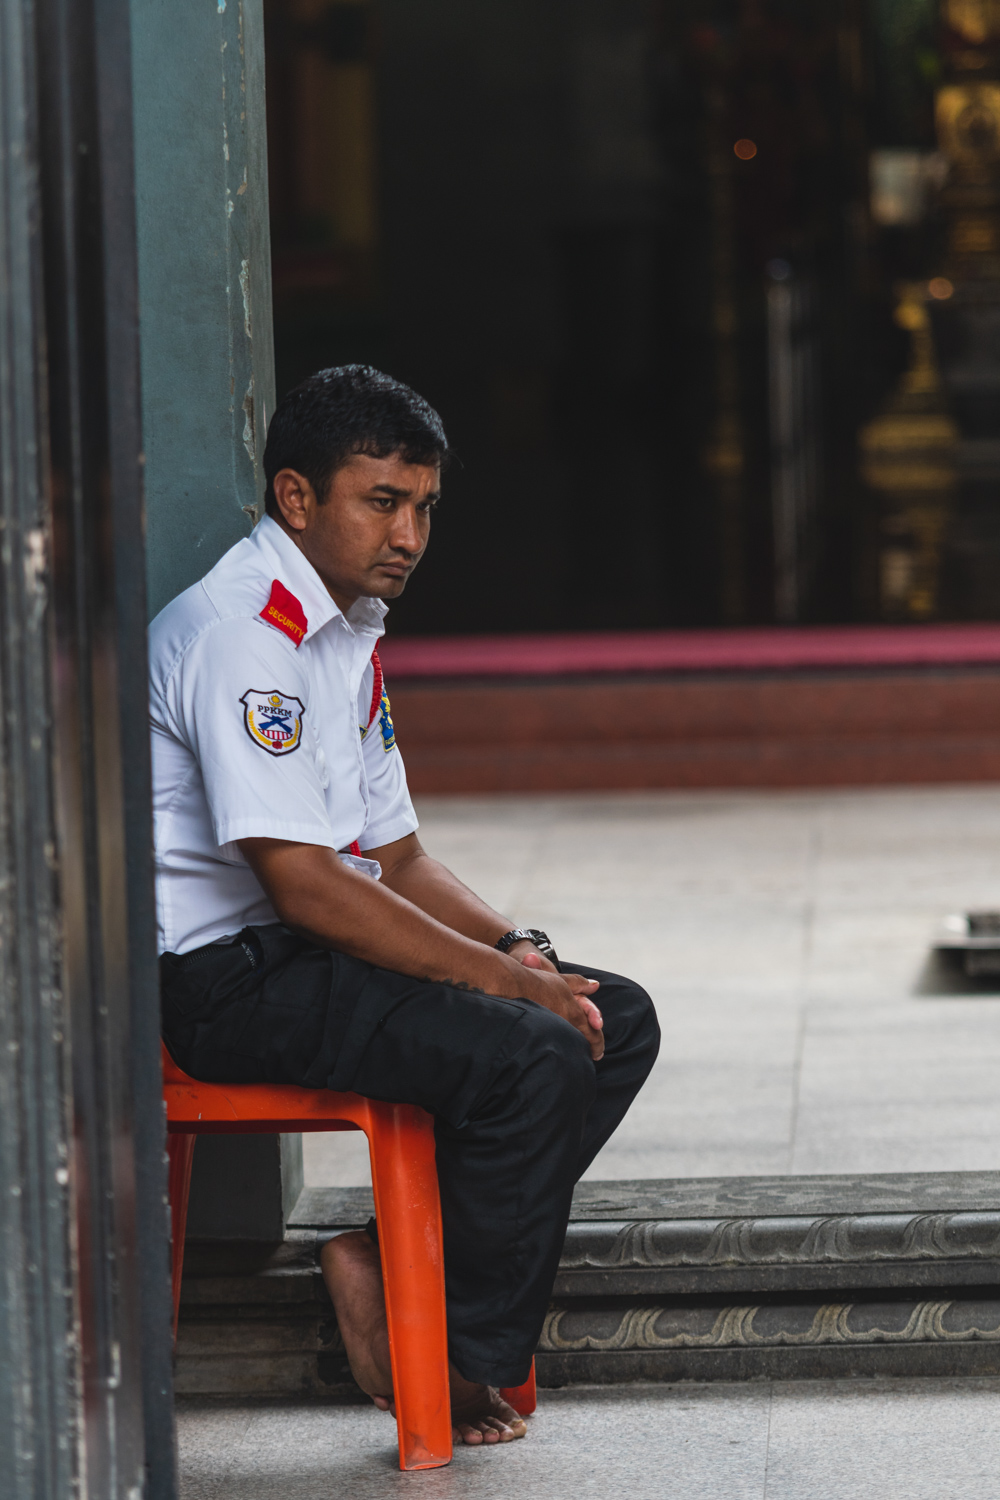 The somewhat uneventful life of a temple security guard.